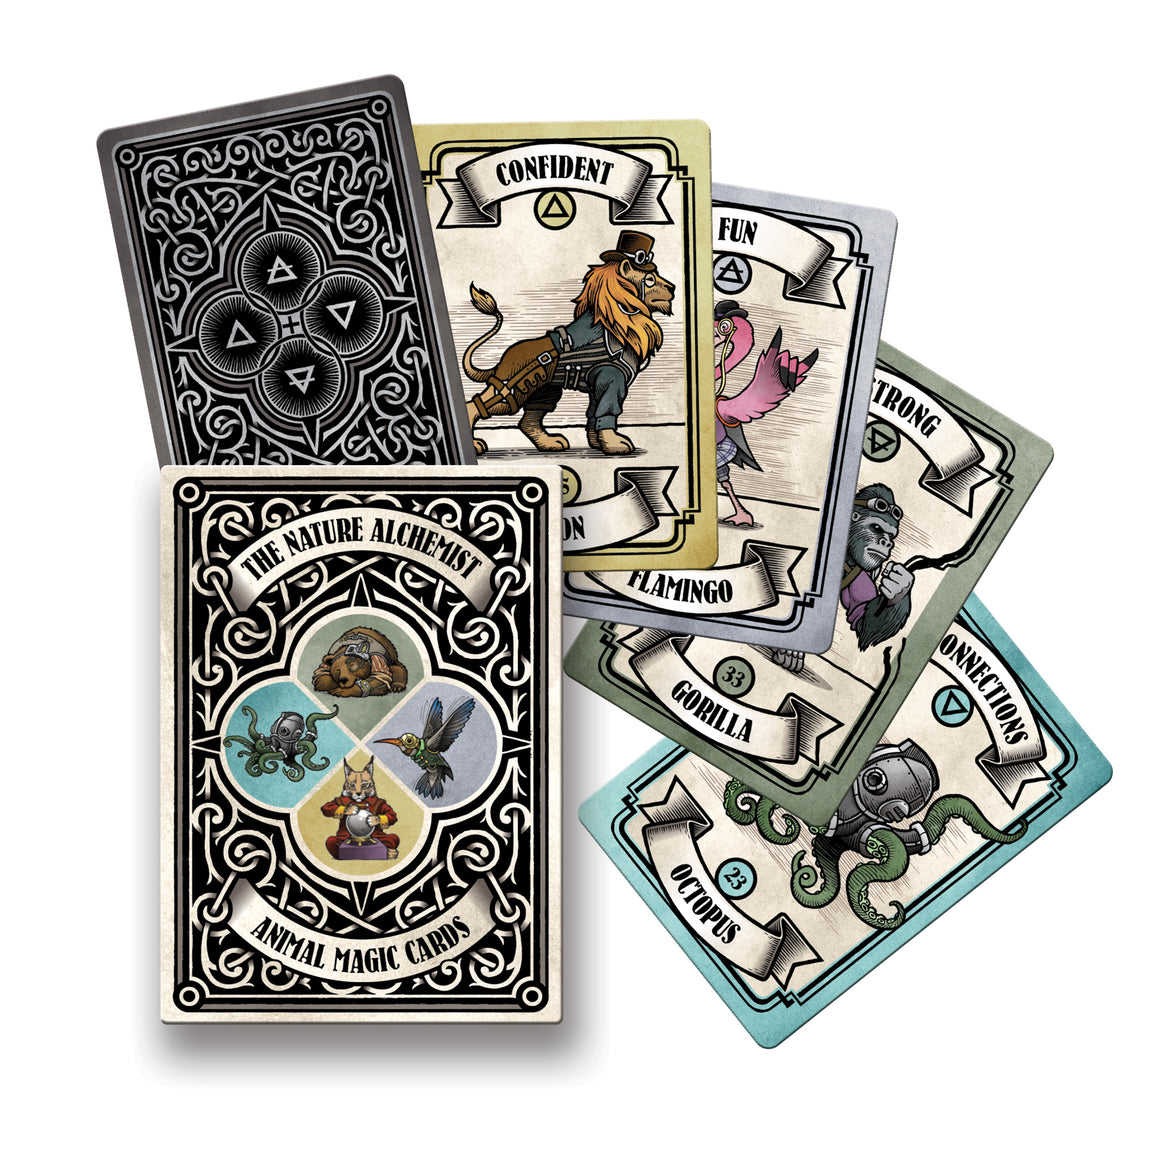 Starter Pack - Steampunk 'Animal Magic' guidance cards 12 decks plus a shop sample (Wholesale price $199.00 AU)